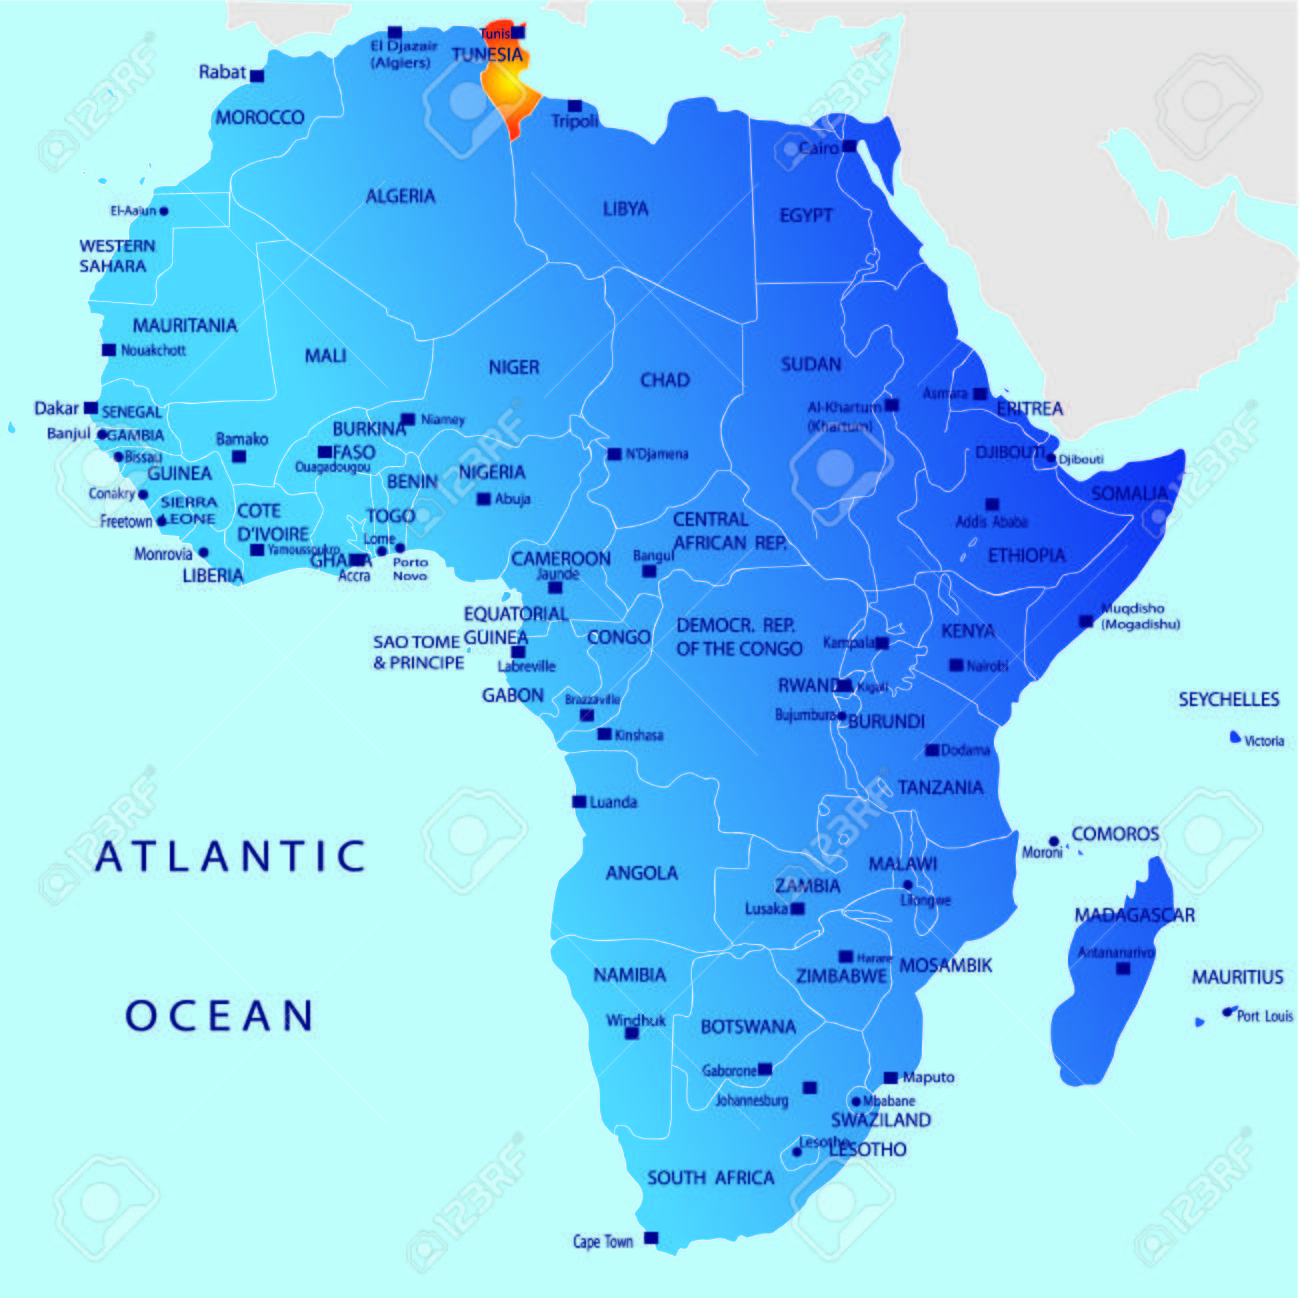 Political Map Of Africa Tunisia Royalty Free Cliparts Vectors - Tunisia map africa